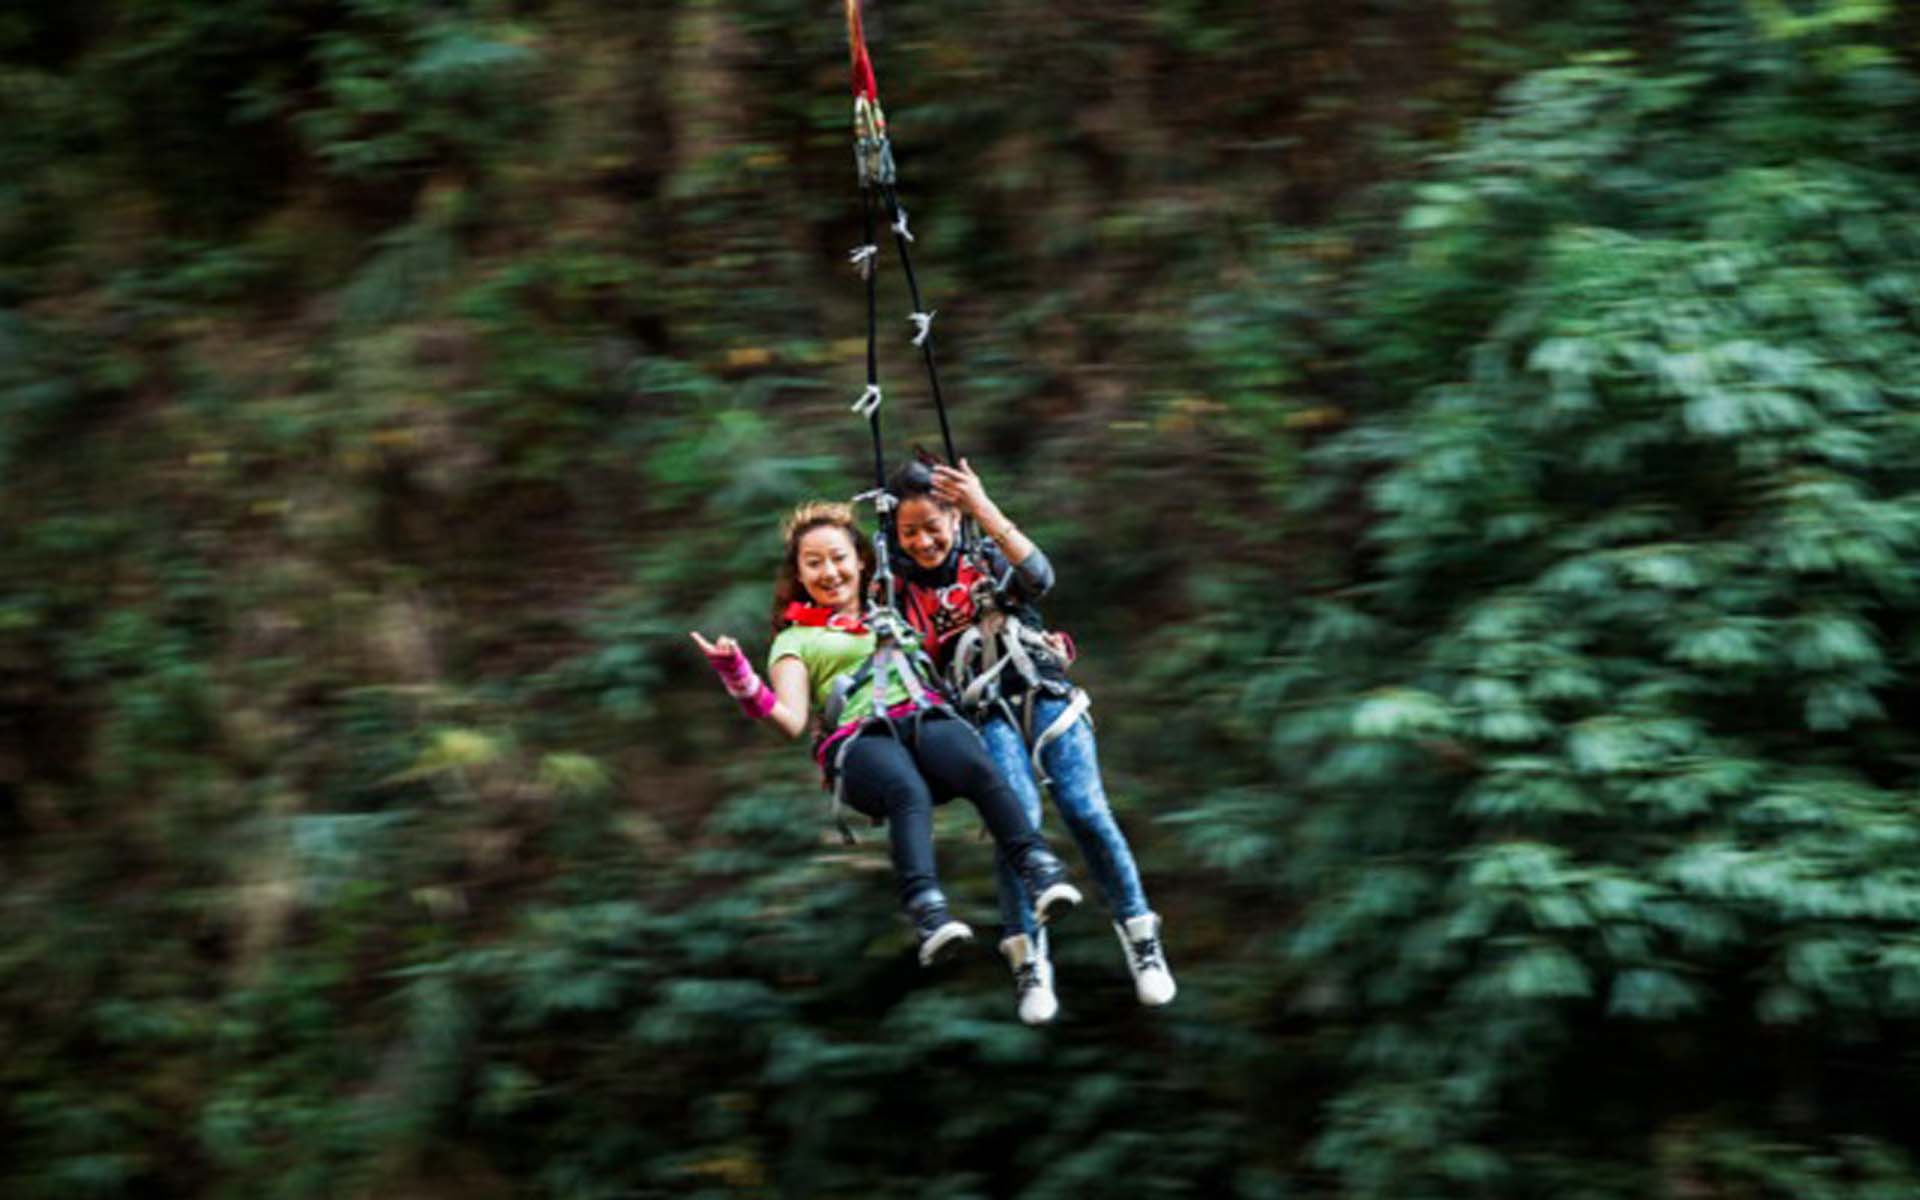 Tandem swing-A New Product!